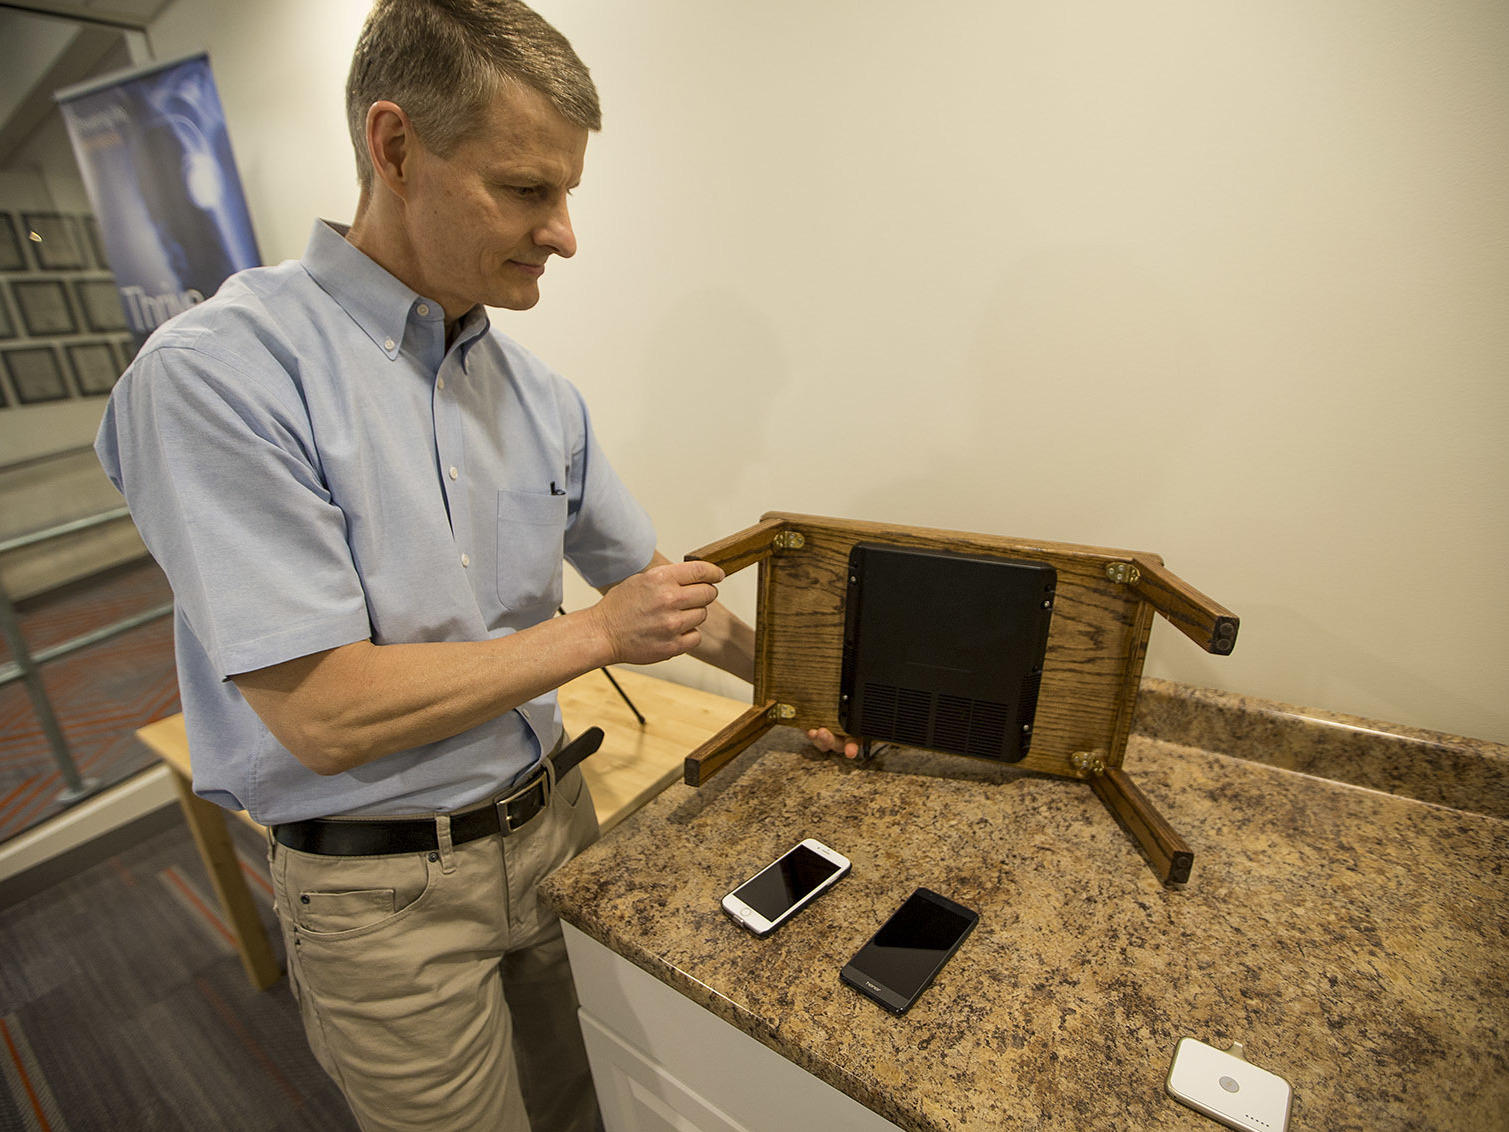 A future of gadgets without power cords not so fast wuwm - Chief information technology officer ...